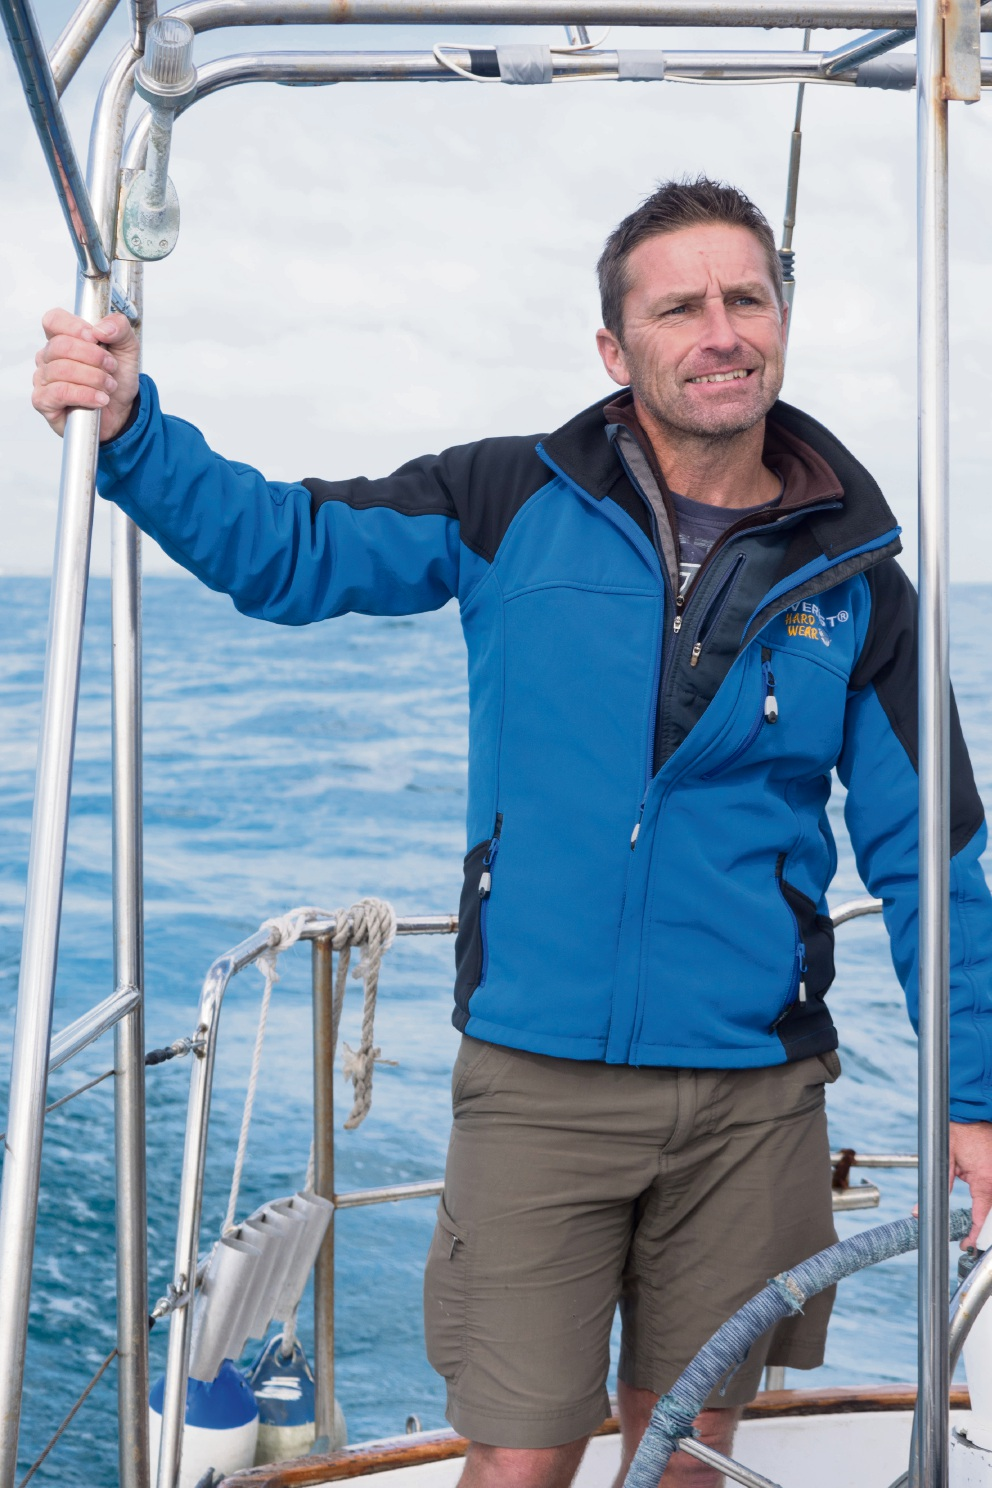 Kevin Farebrother will attempt to sail around the globe solo, non-stop and unassisted next year.